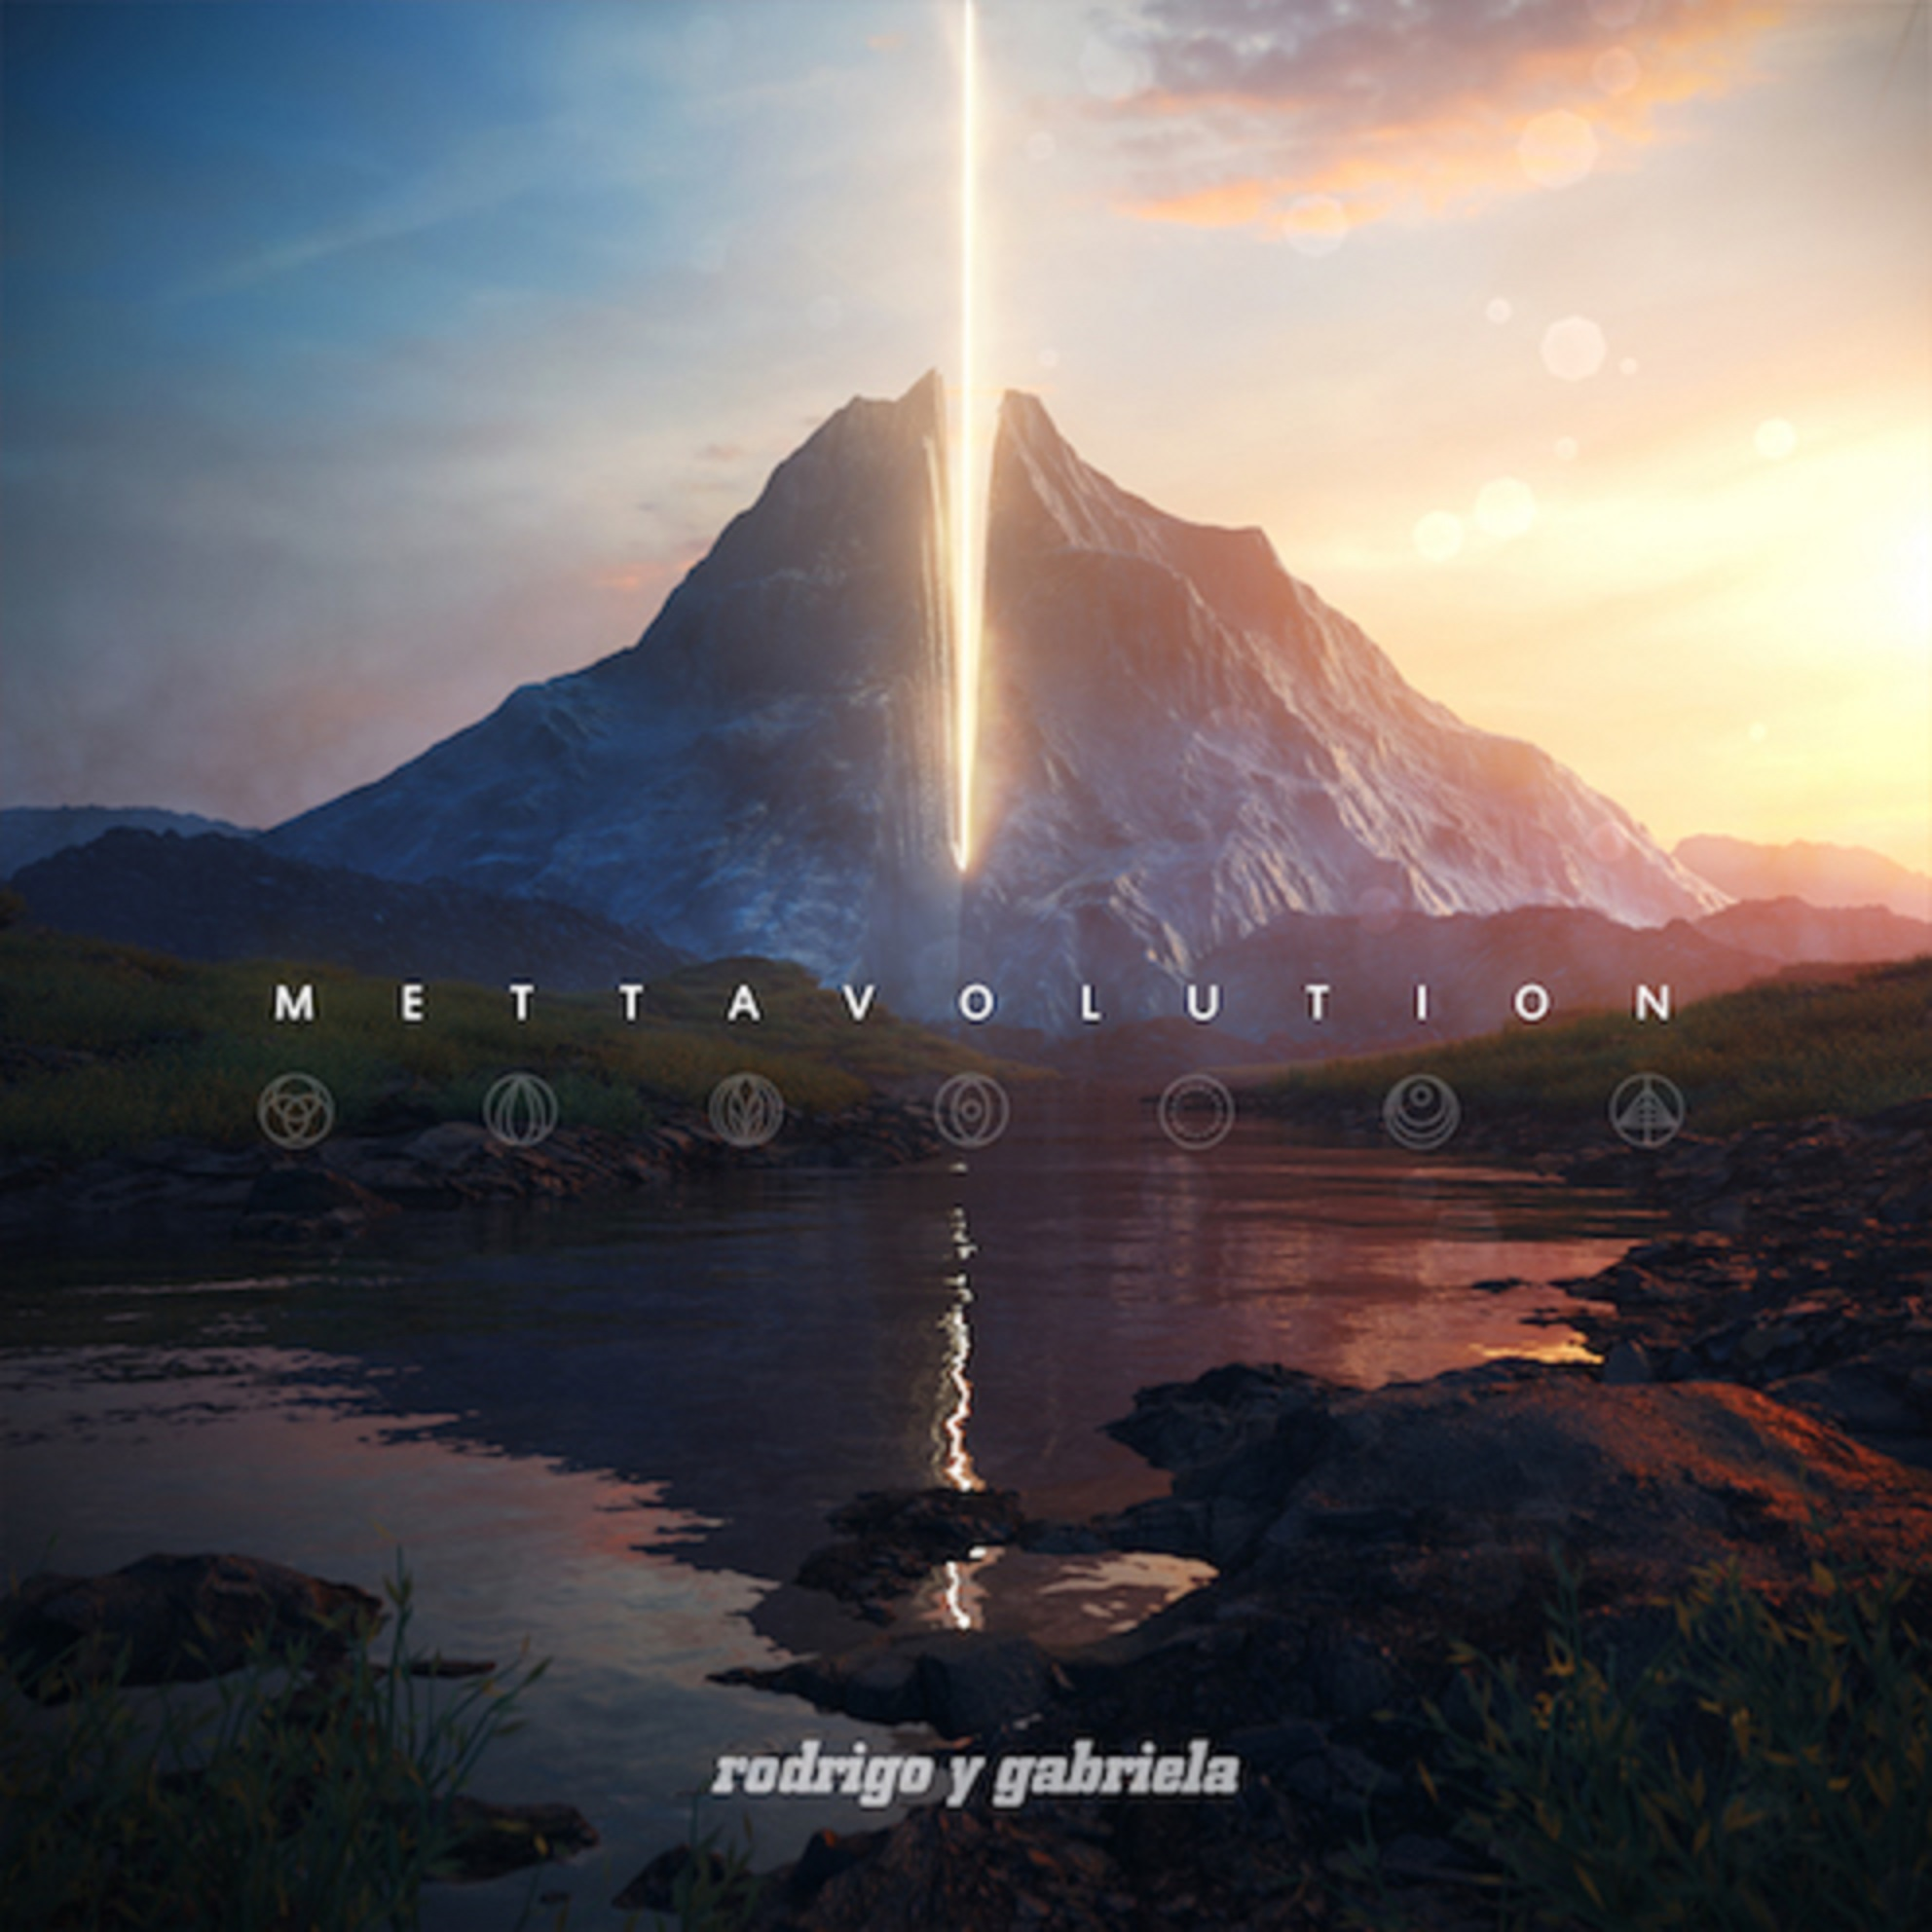 Rodrigo y Gabriela's new record out today